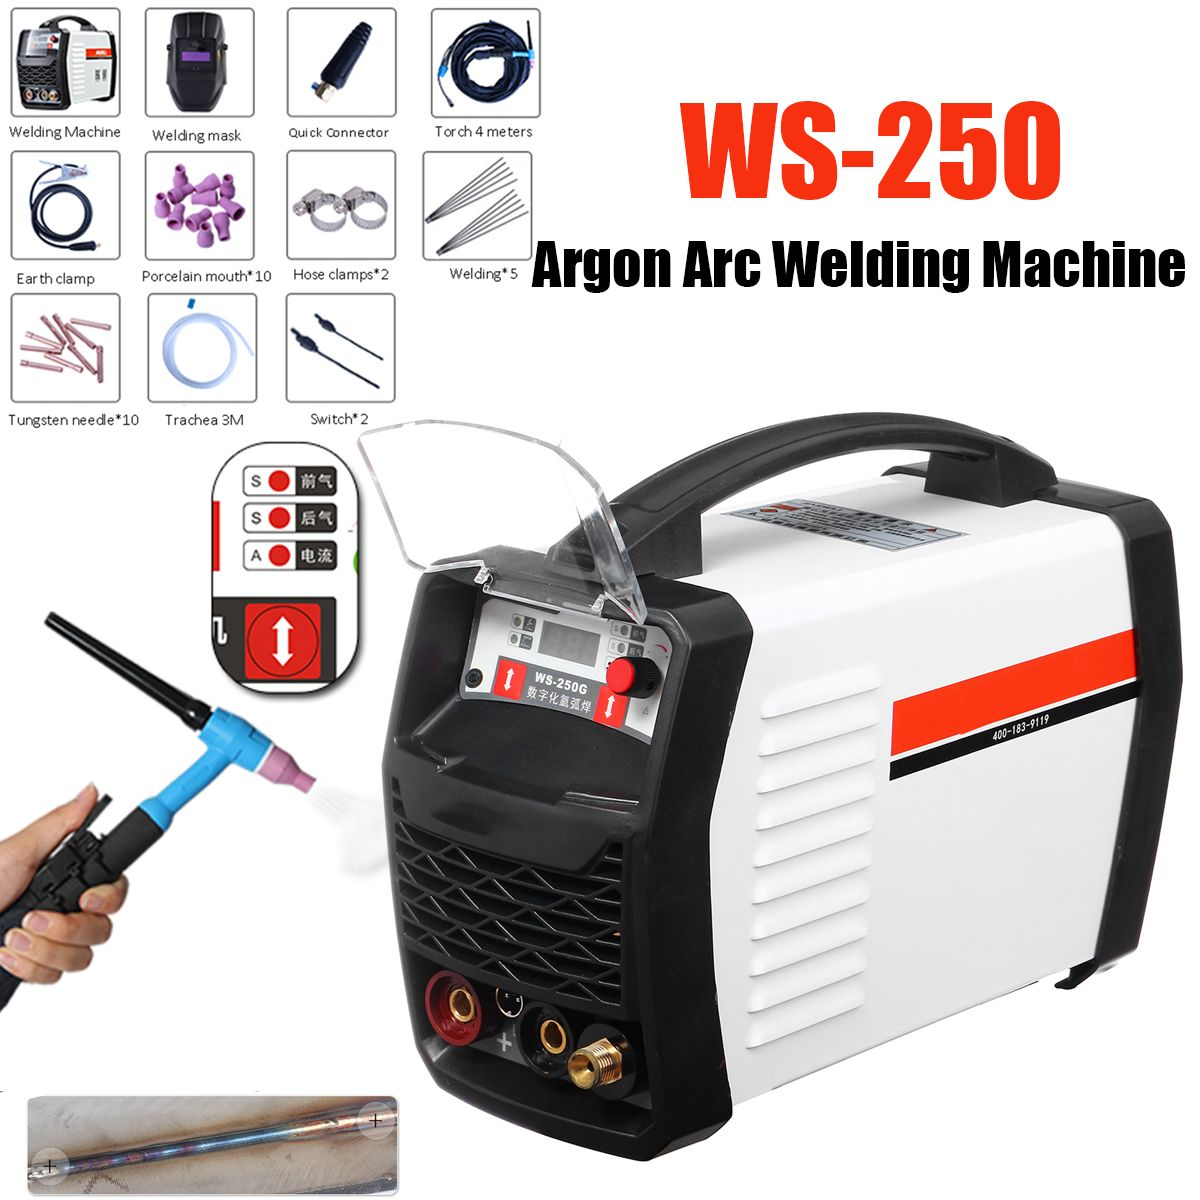 220V 250A LED Digital Argon Inverter Arc Welding Machine WS-250 MOS TIG MMA W elder for Welding